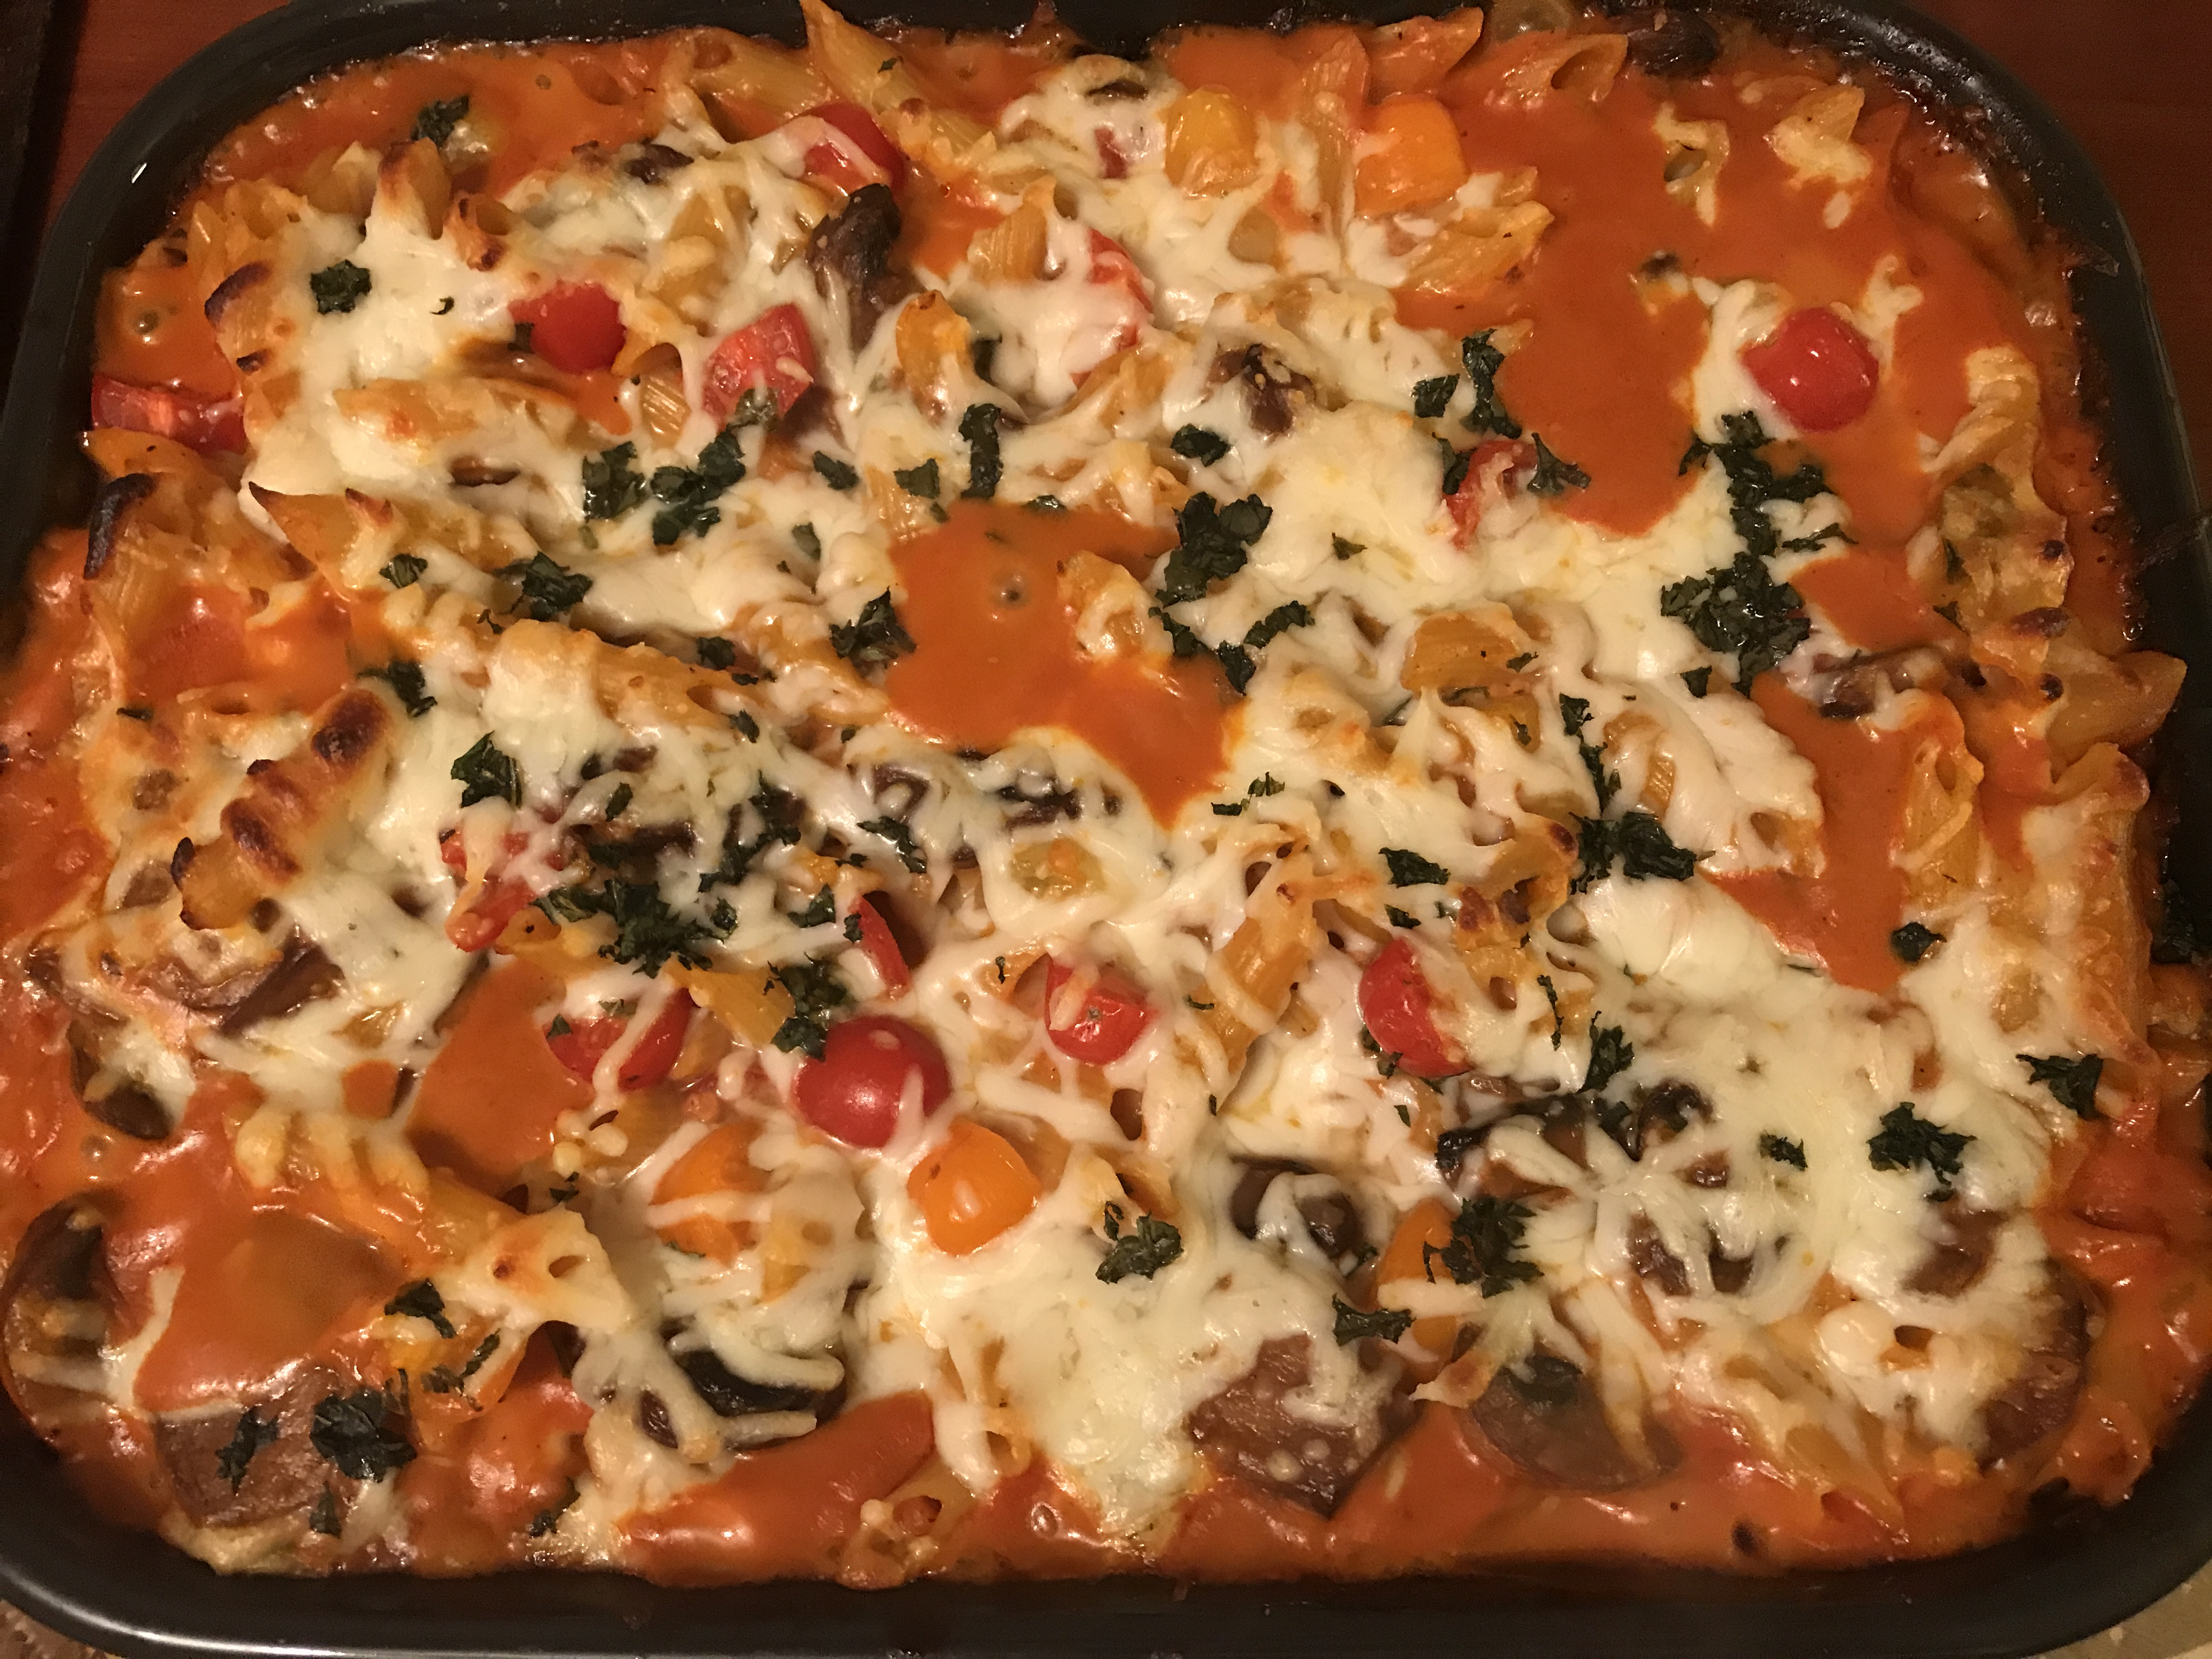 Creamy Pasta Bake with Cherry Tomatoes and Basil Butch Cotton